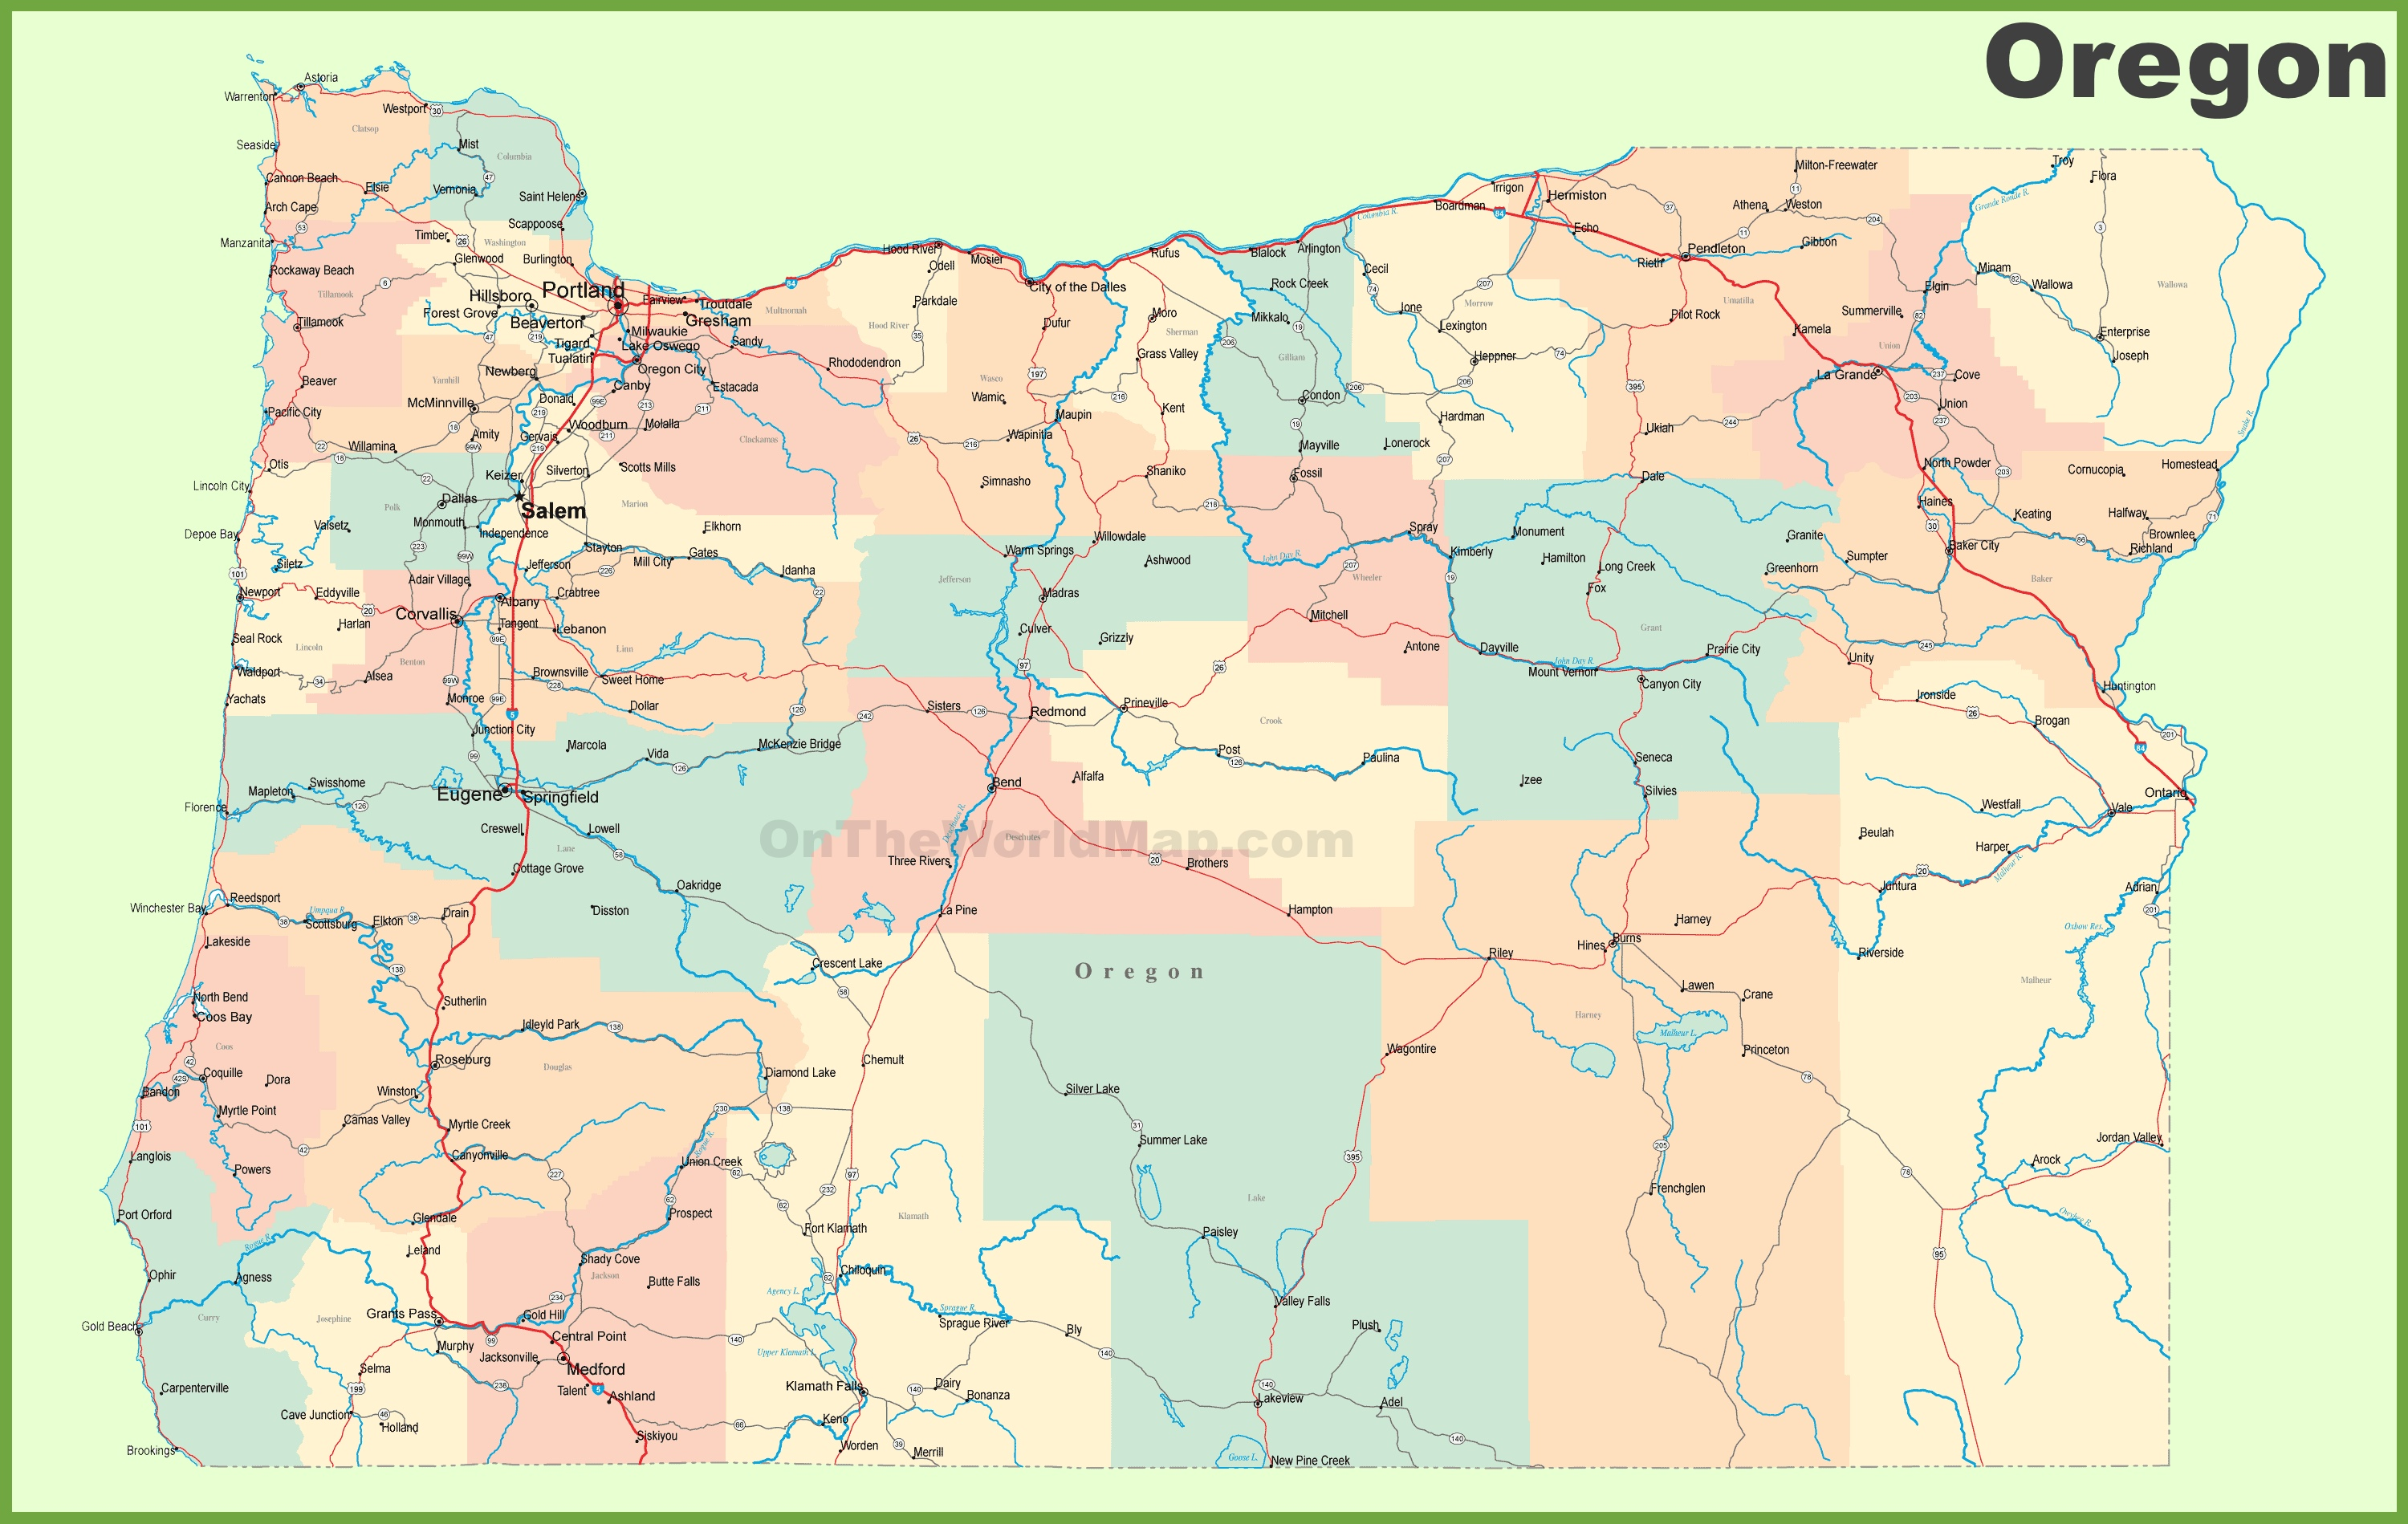 Oregon State Maps USA Maps Of Oregon OR - Oregon in the usa map